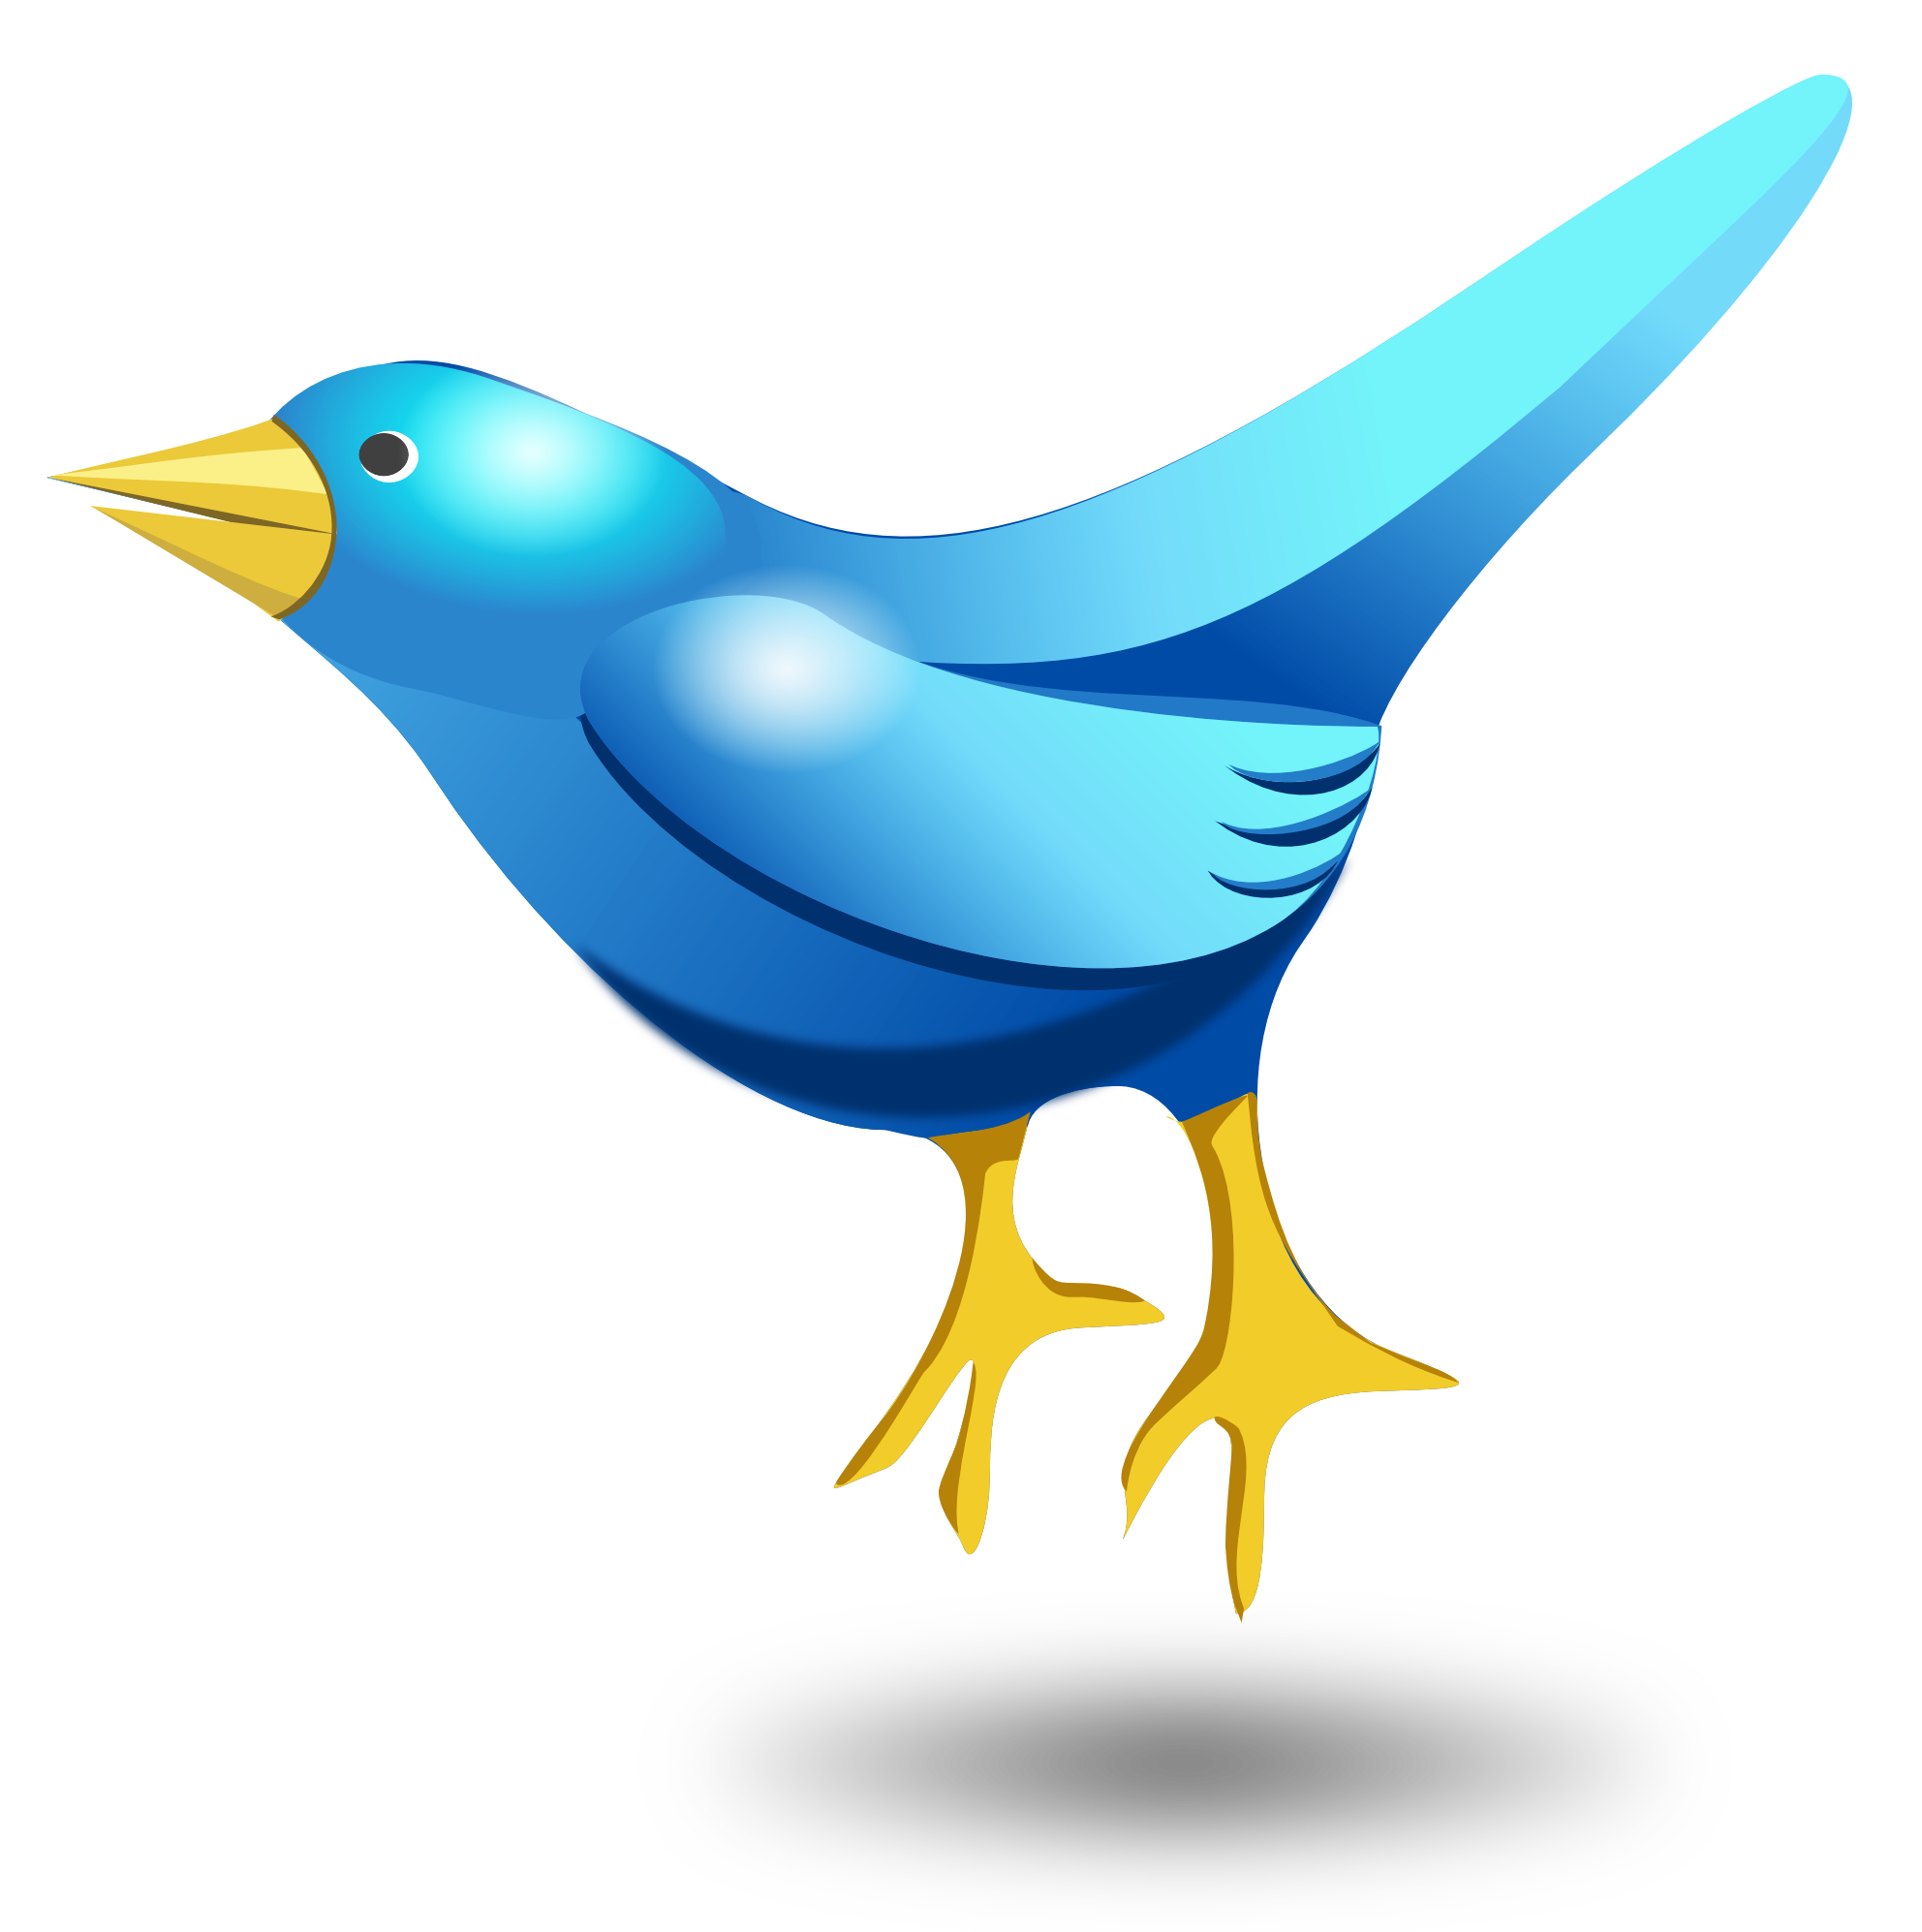 Vector Twitter Tweet Bird PNG Image High Quality PNG Image